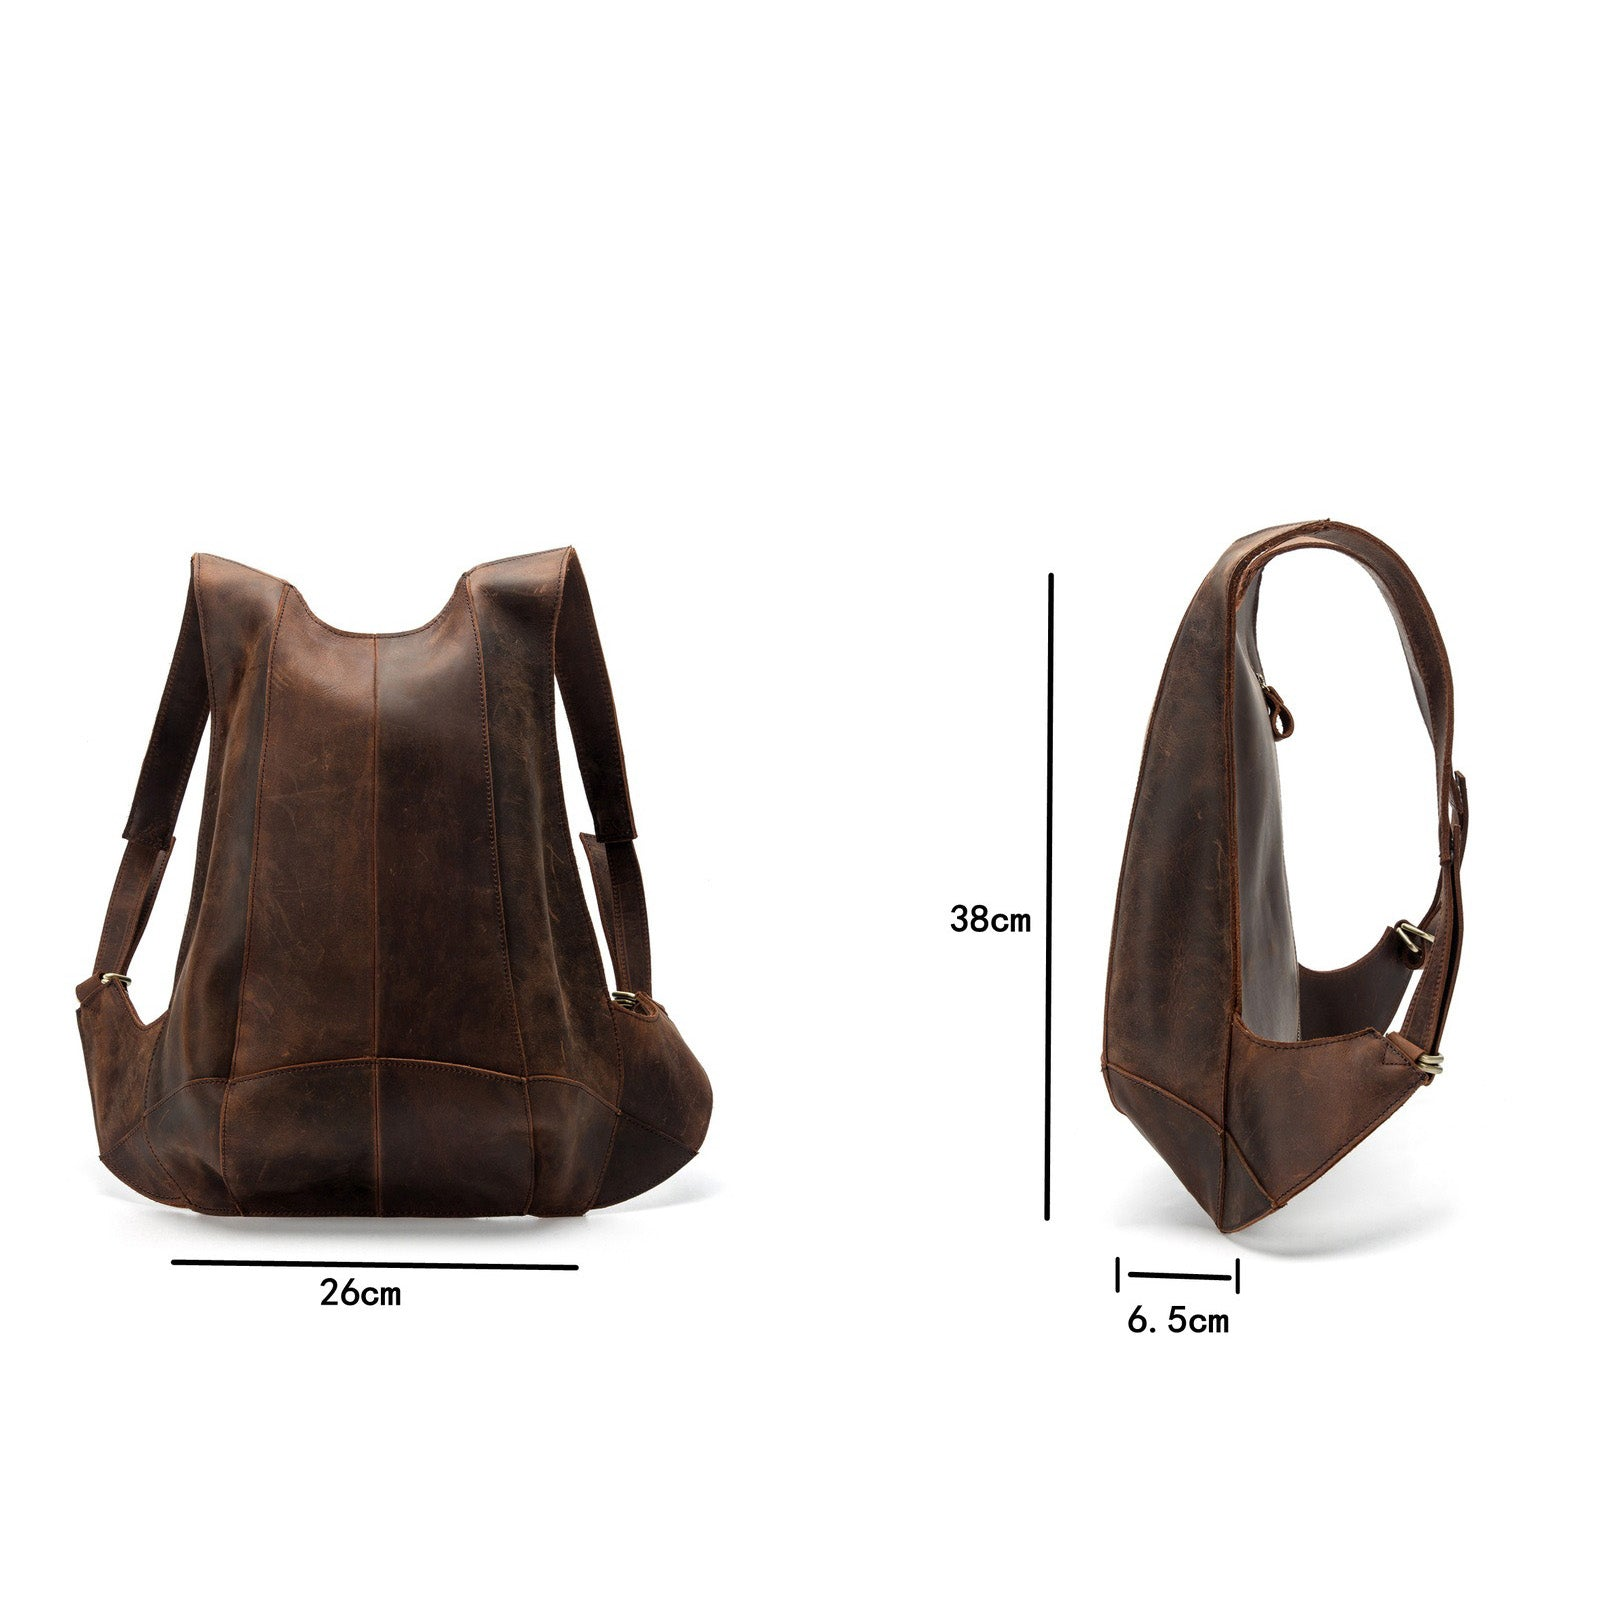 Natural Leather Backpack for Women / Travel Anti Theft Backpack / Genuine Leather Accessorie - HARD'N'HEAVY